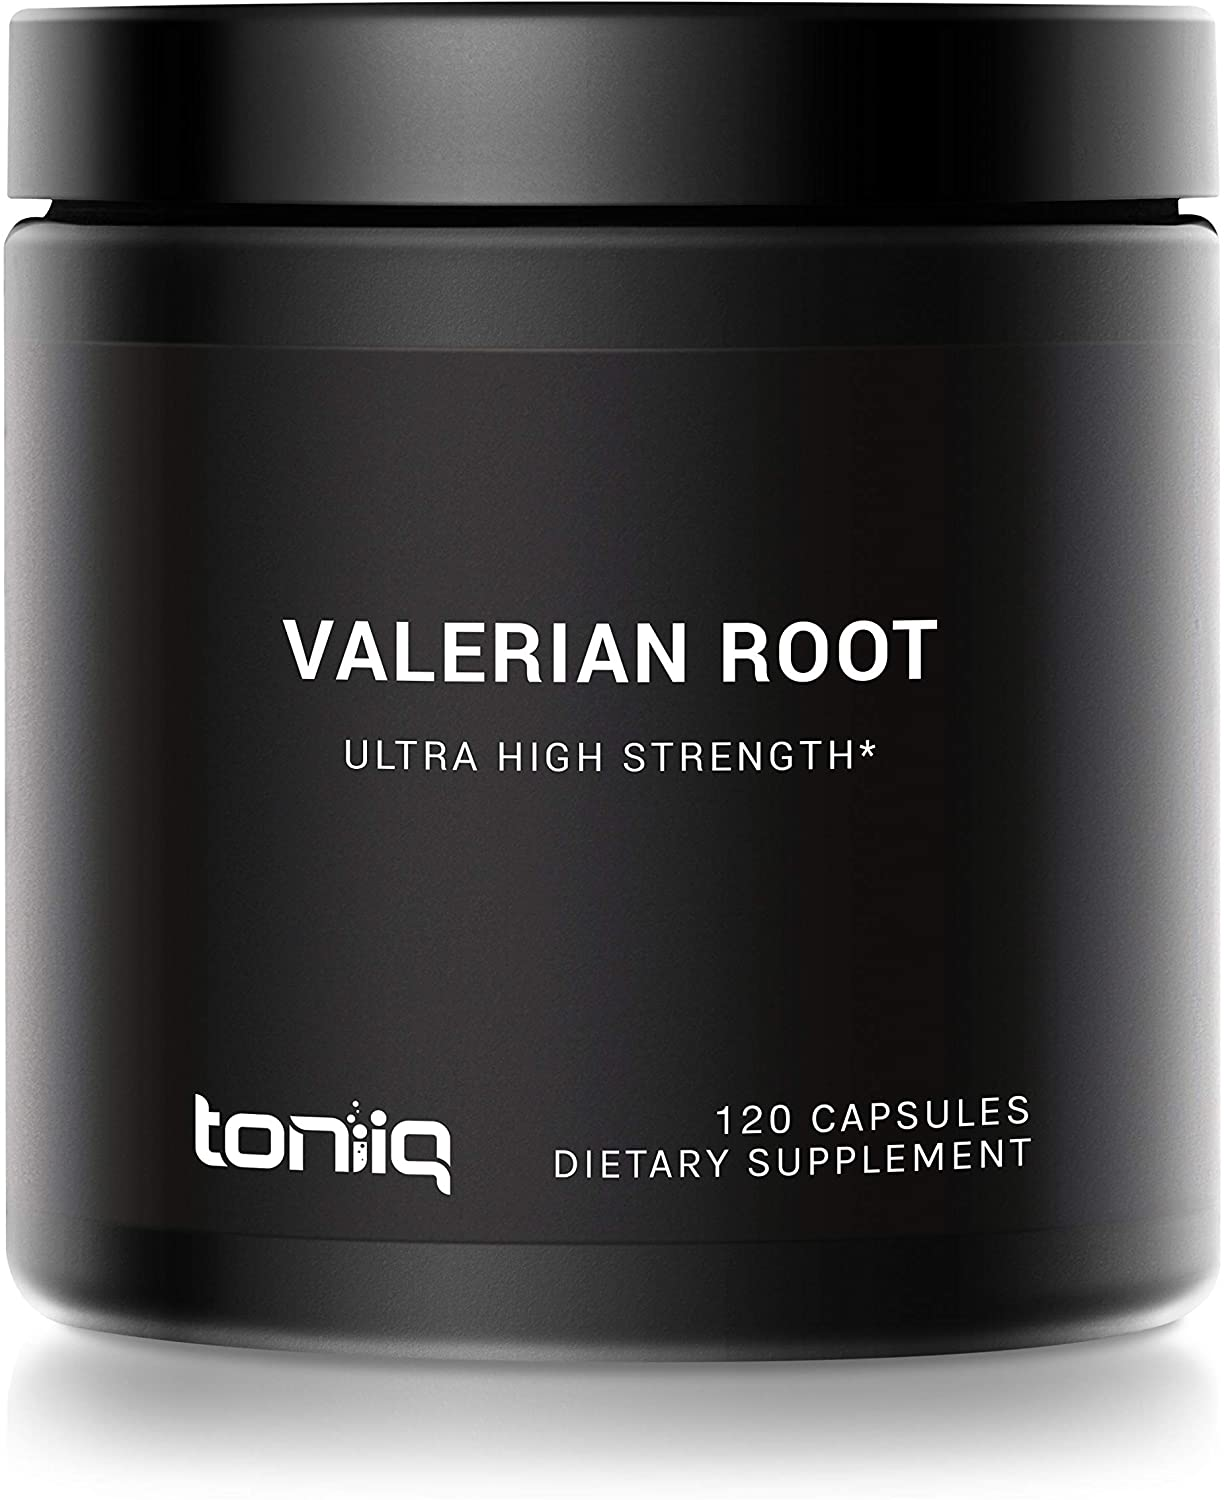 Ultra High Strength Valerian Root Capsules - 1,300mg 4X Concentrated Extract - The Strongest Sleep Aid Supplement Available - 120 Capsules